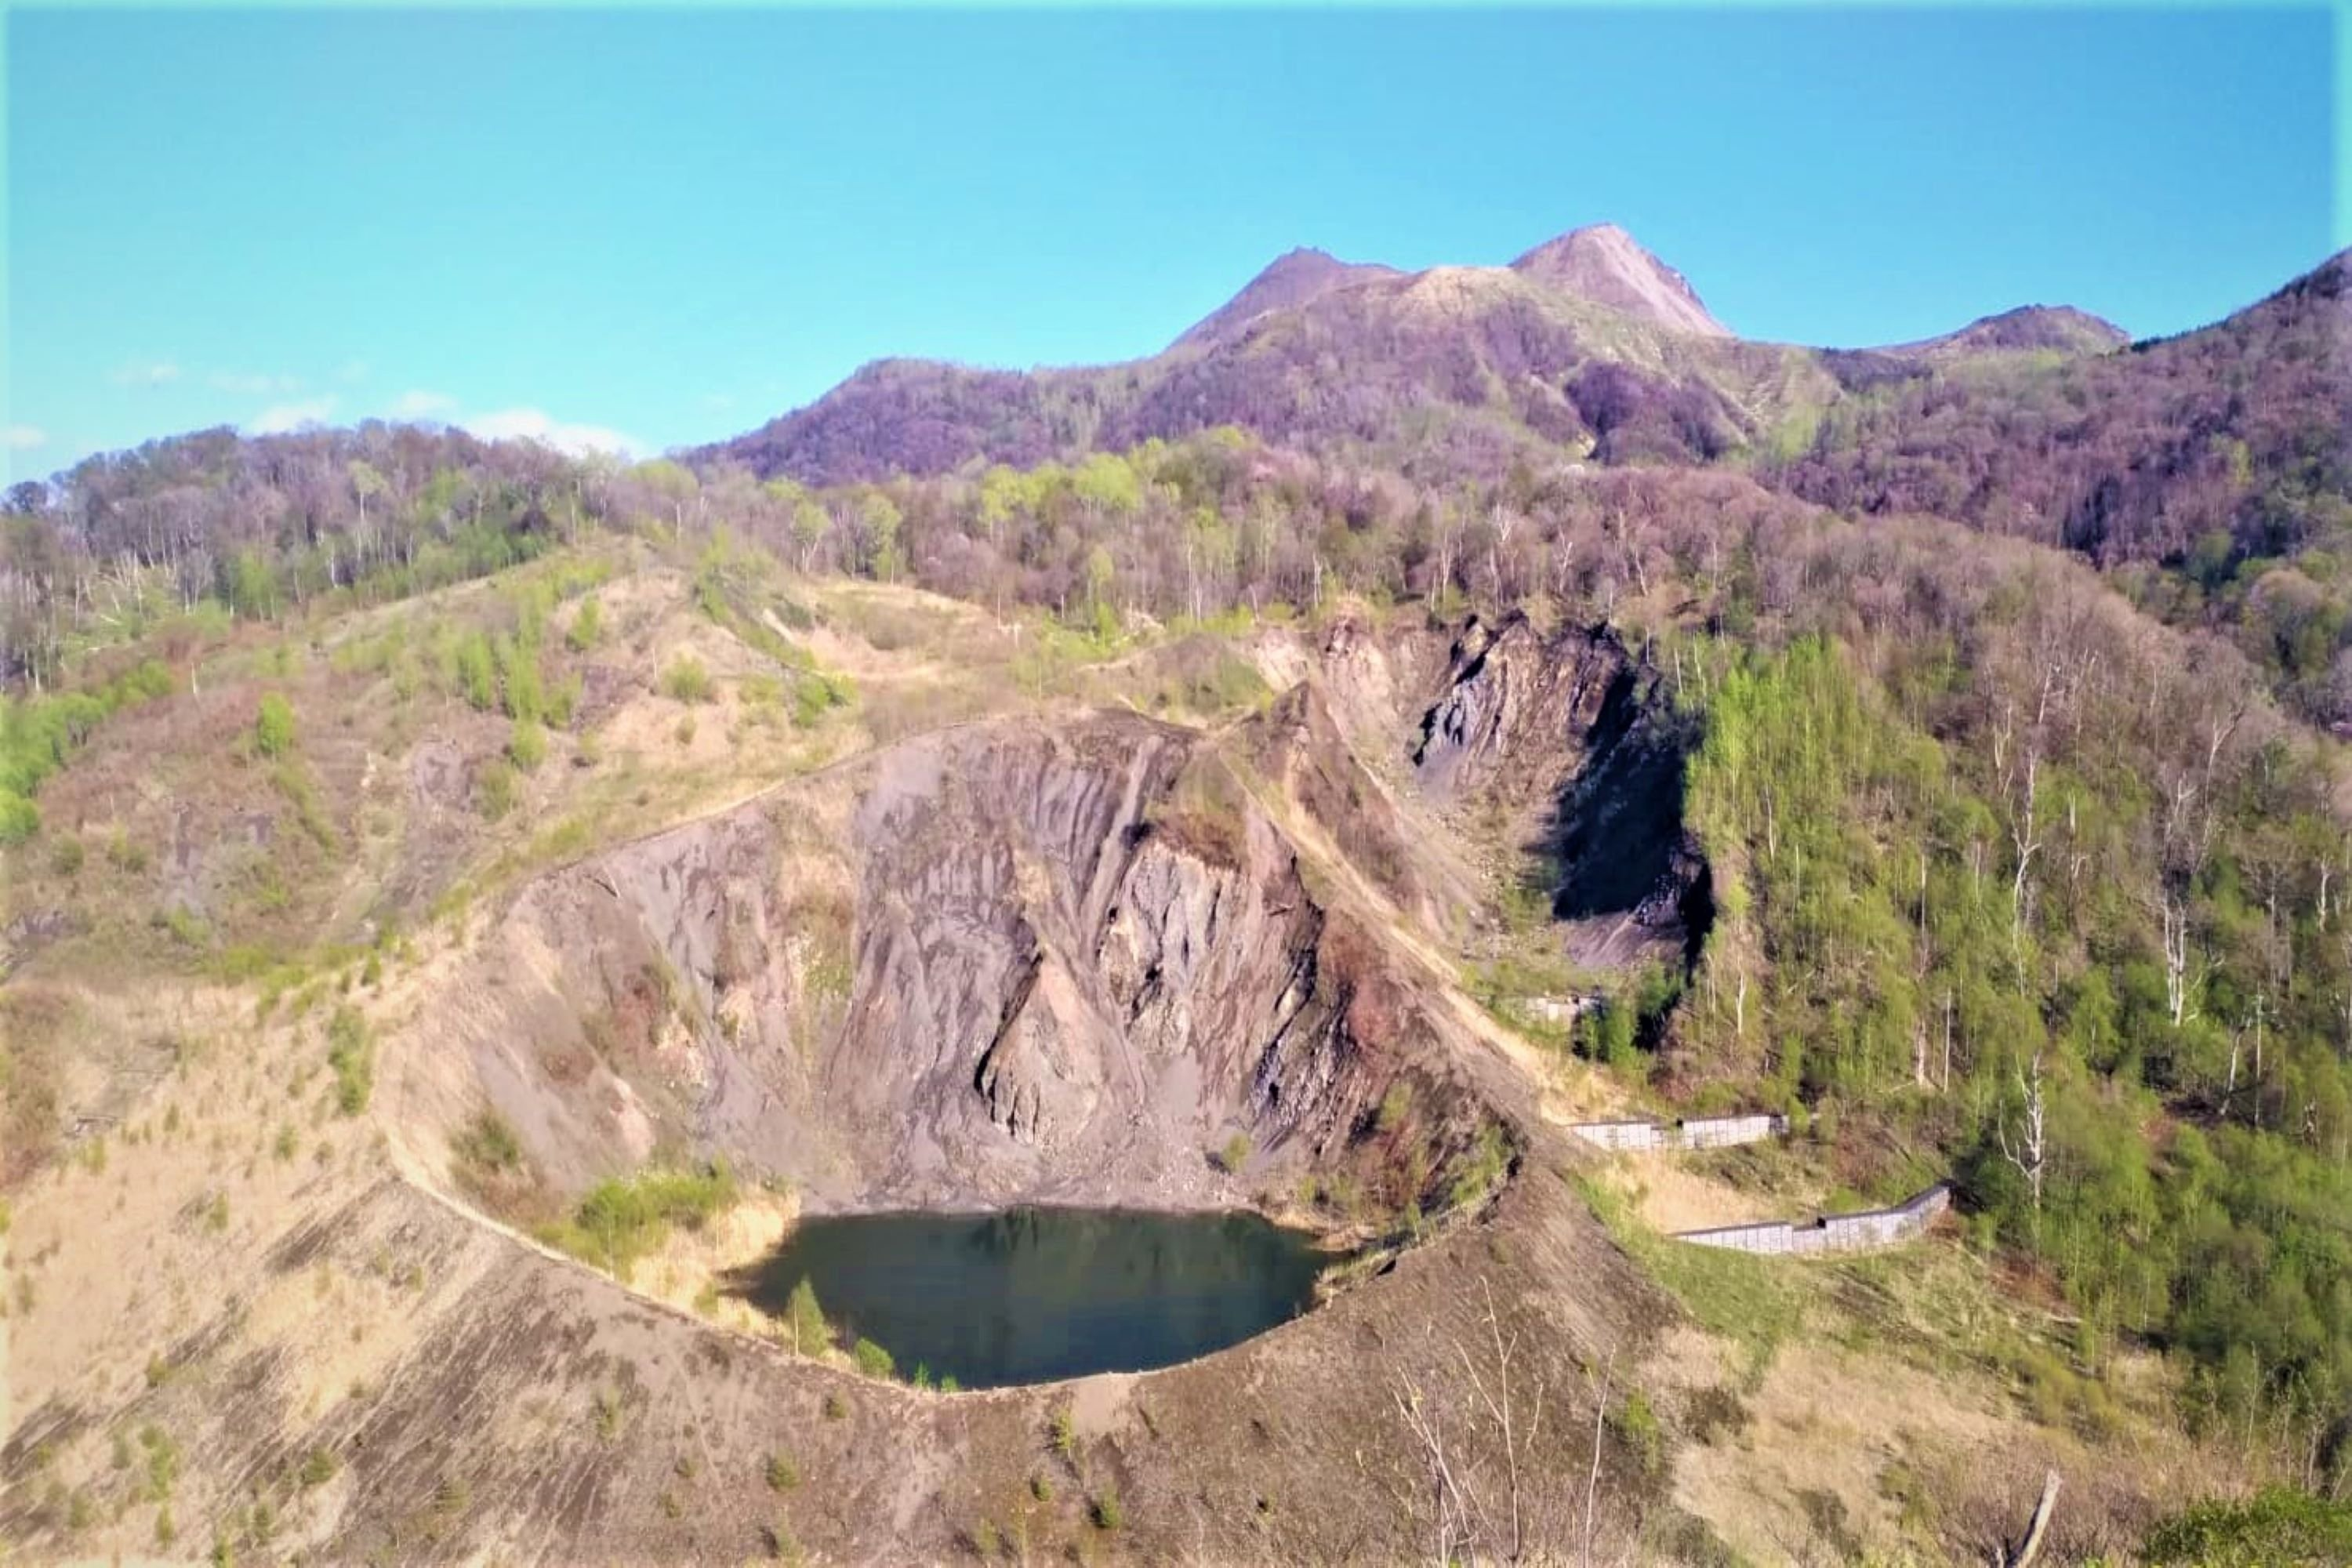 Ancient Volcano crater by Mount Usu in Japan example image 1